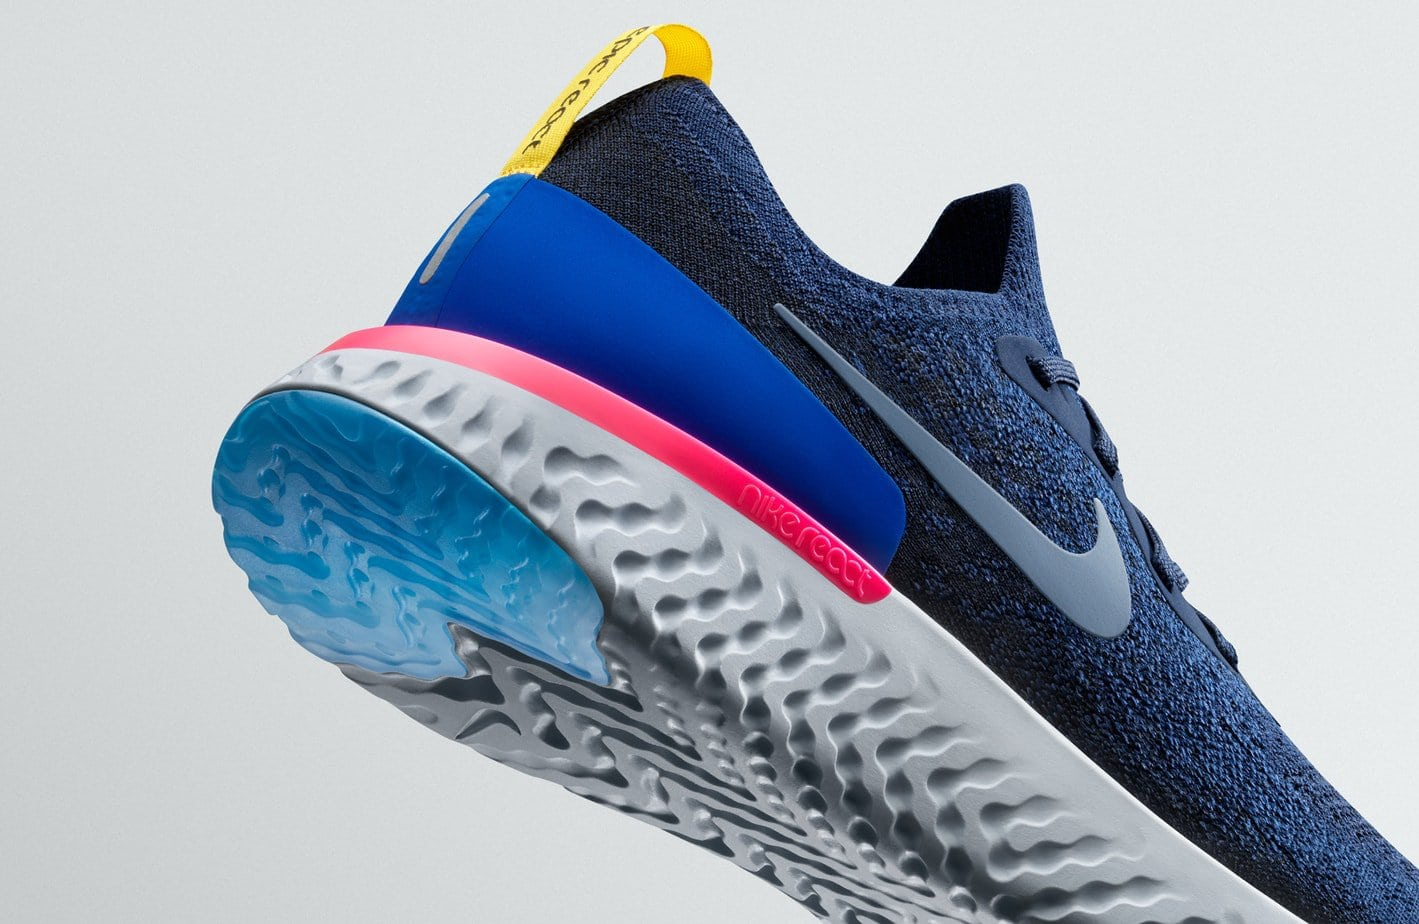 62a548b05ddc Nike debuted their React foam midsole technology last year on two of their  standard basketball models. Now